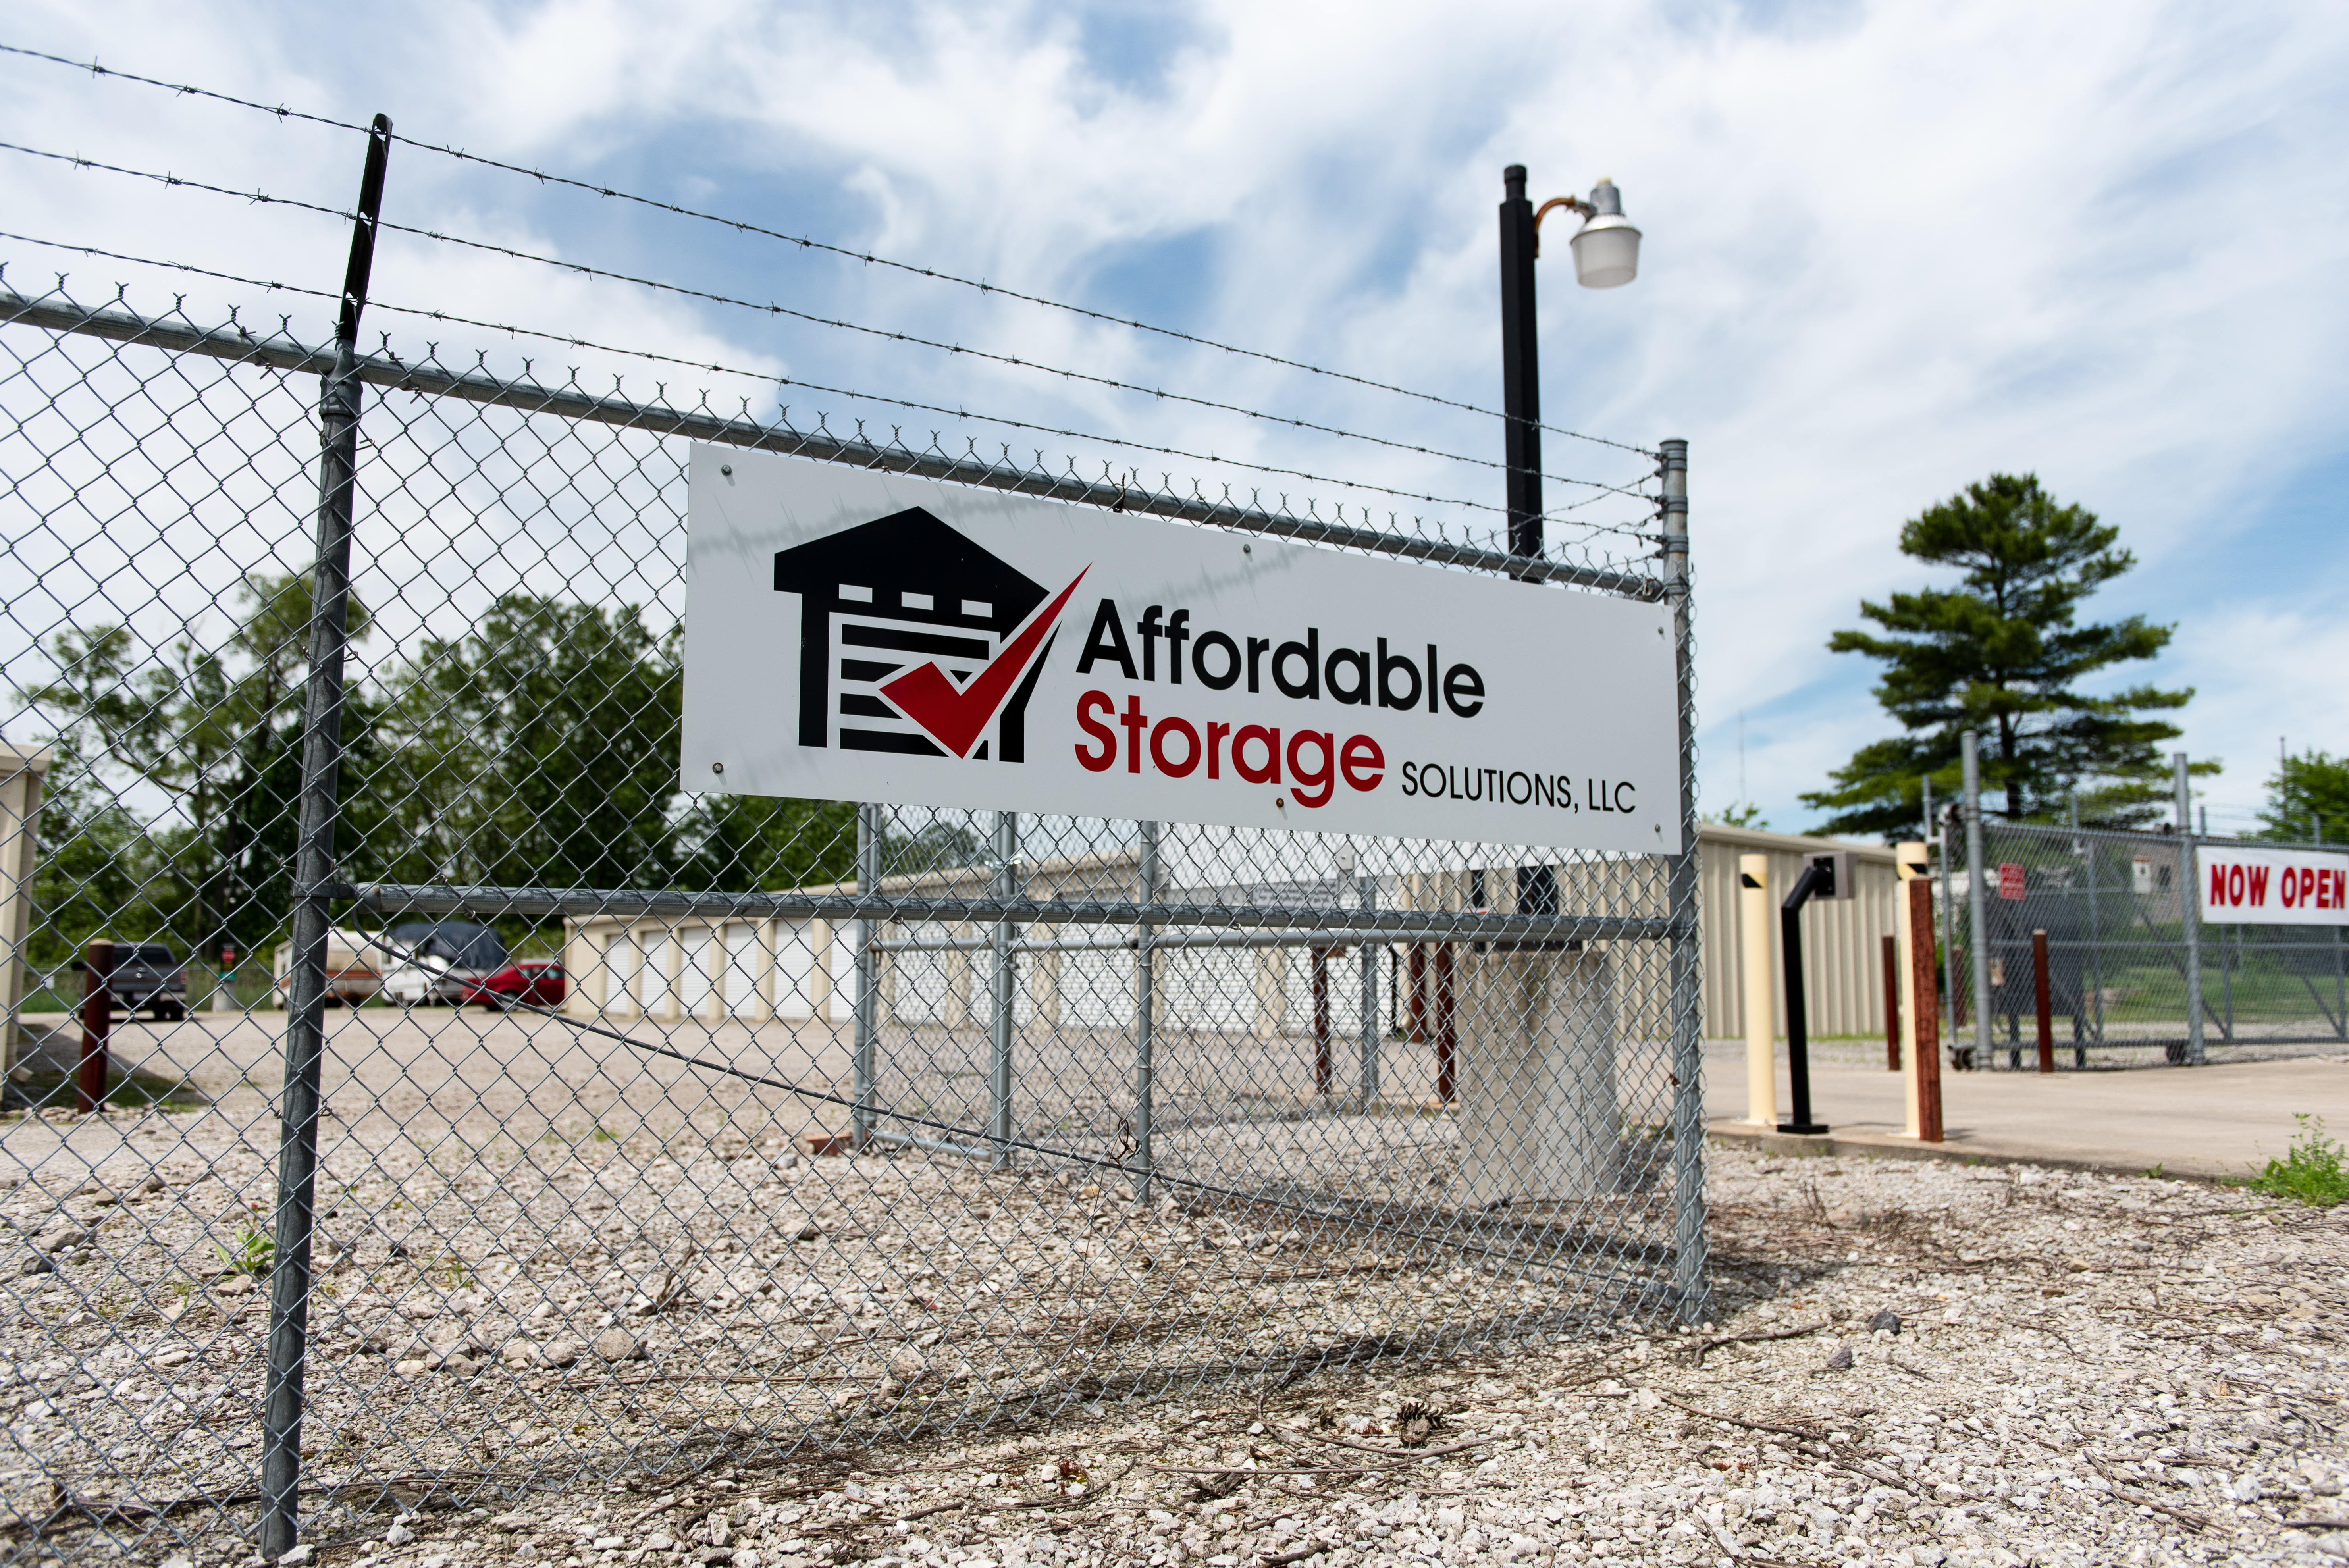 affordable storage solutions sign